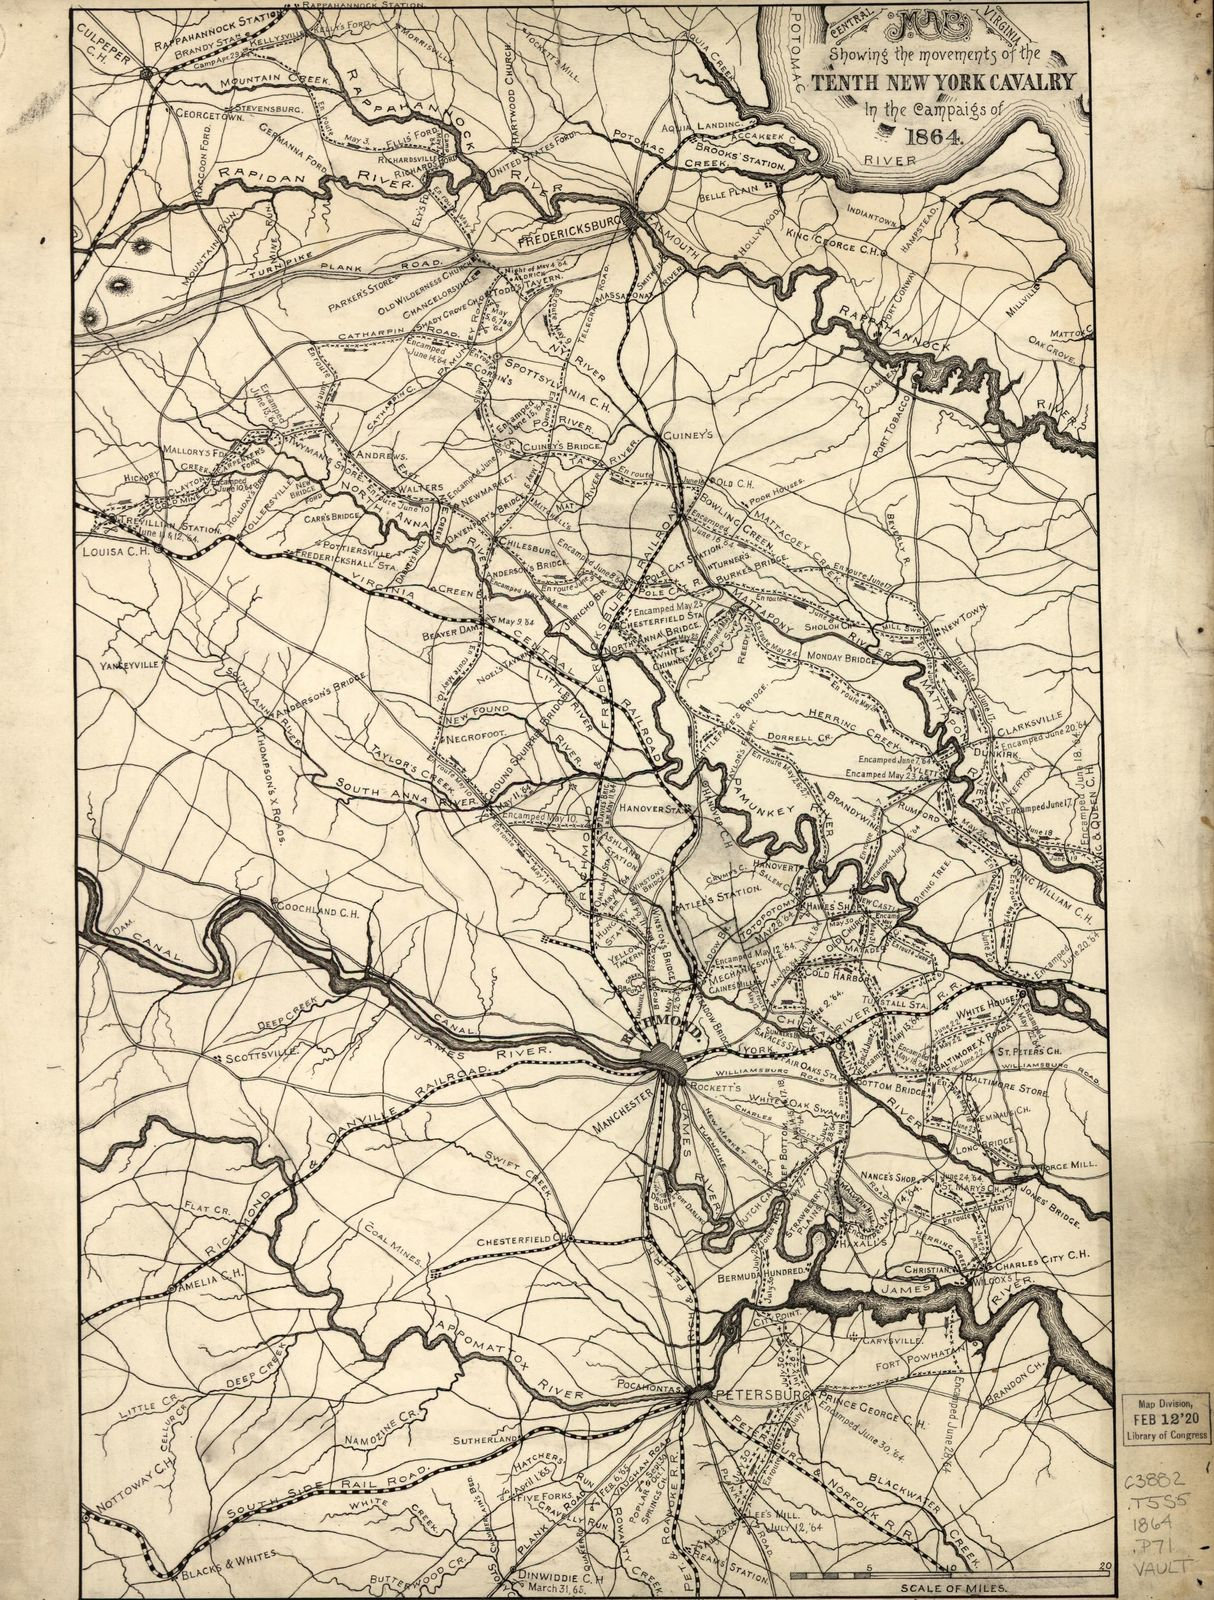 Map [of] central Virginia showing the movements of the Tenth New York Cavalry in the campaigs [sic] of 1864.